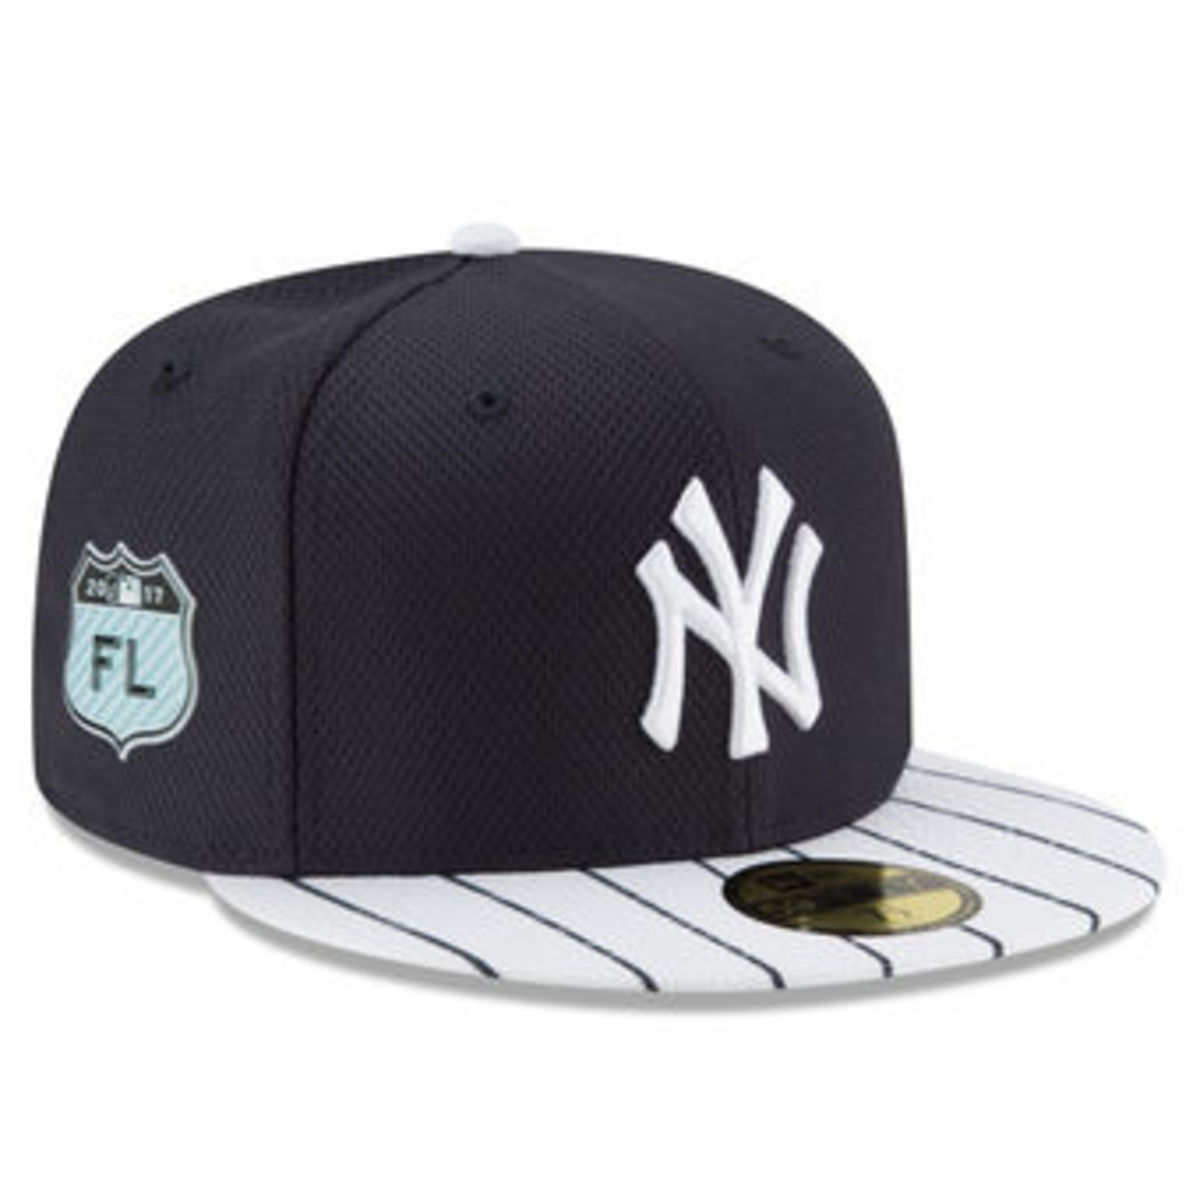 yankees-spring-training-hat-2.jpg